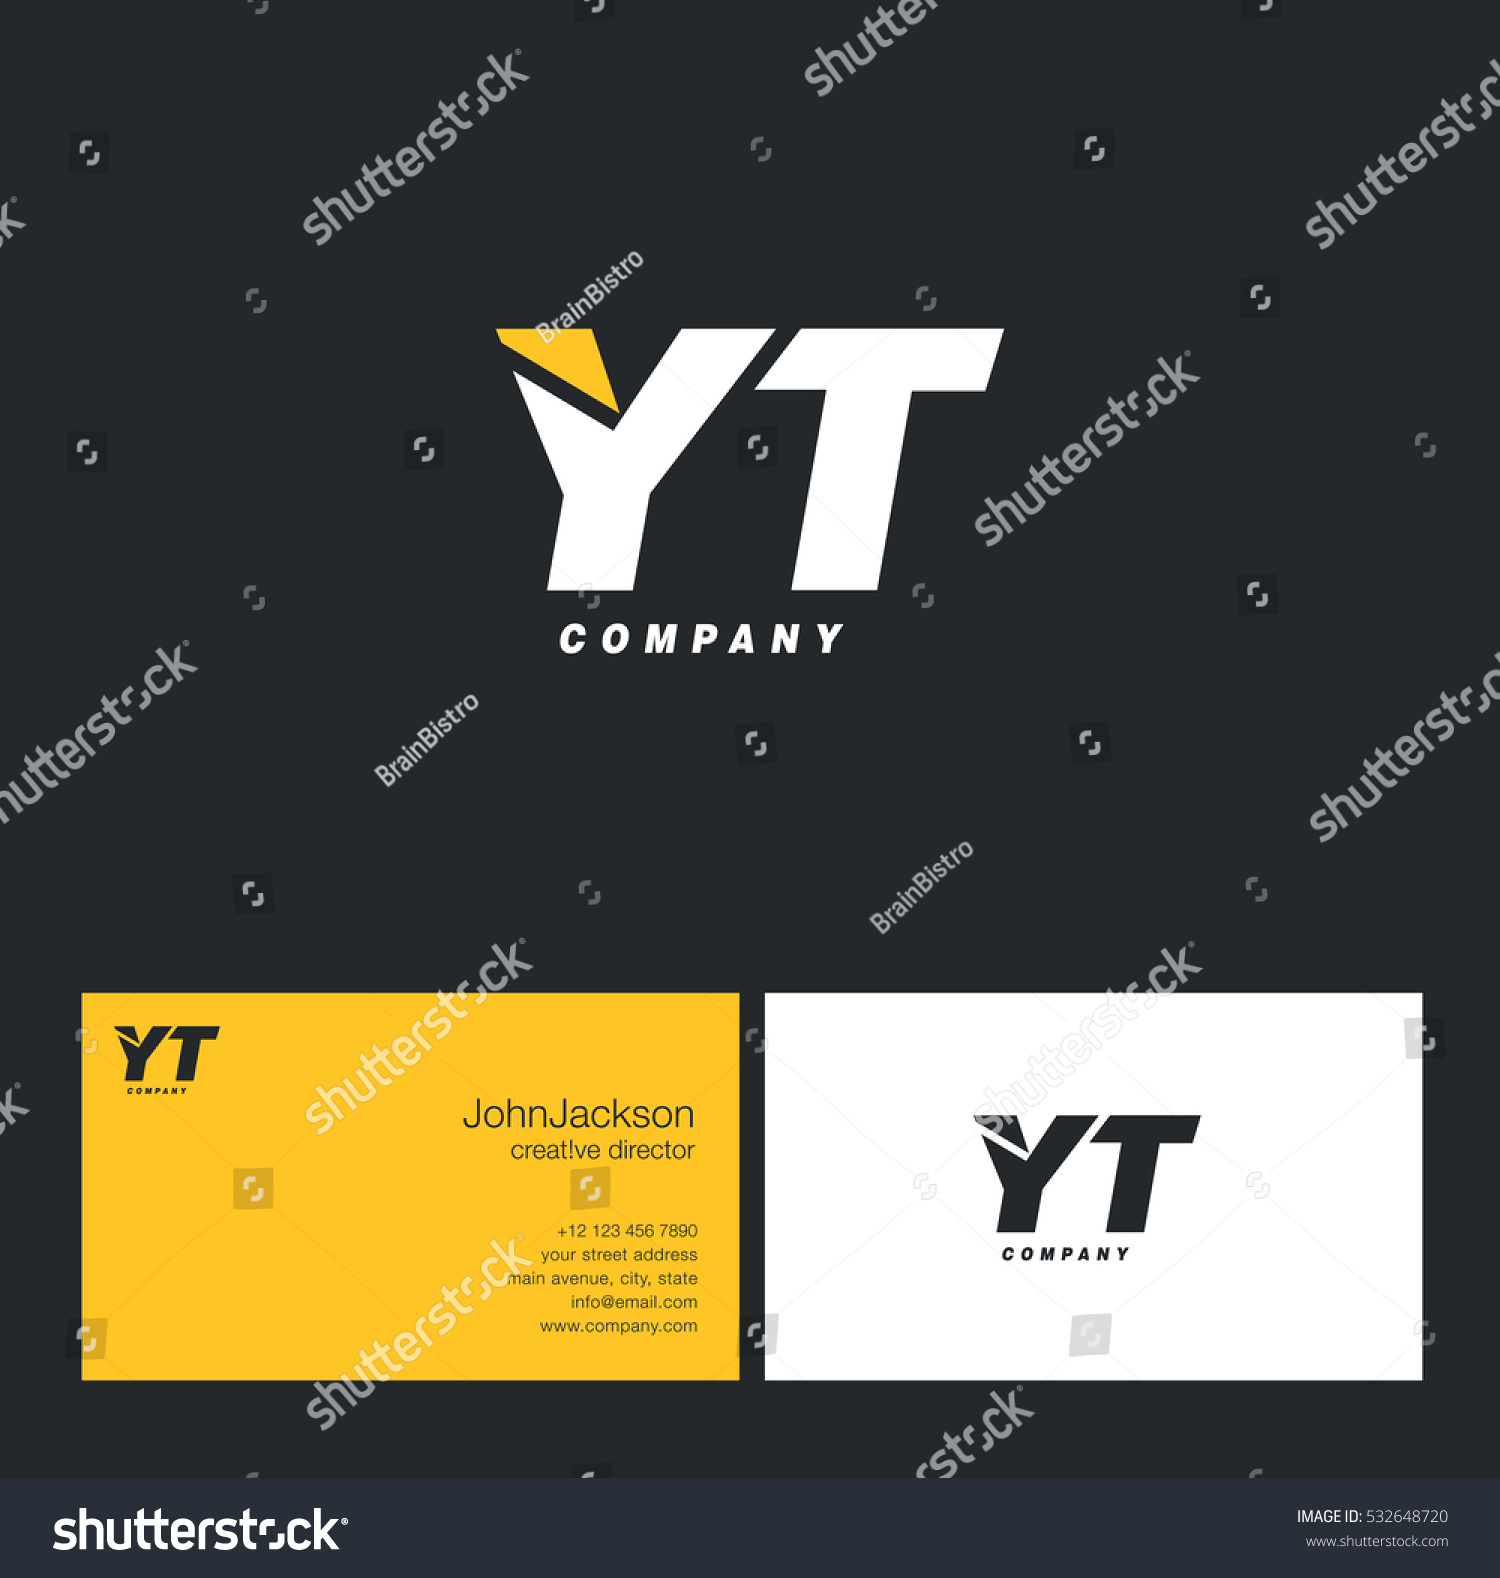 Cute 1 Inch Hexagon Template Huge 1 Page Resumes Examples Square 1.25 Button Template 10 Best Resumes Young 10 Tips To Making A Resume Dark100 Dollar Bill Template Y T Letters Logo Business Card Stock Vector 532648720   Shutterstock